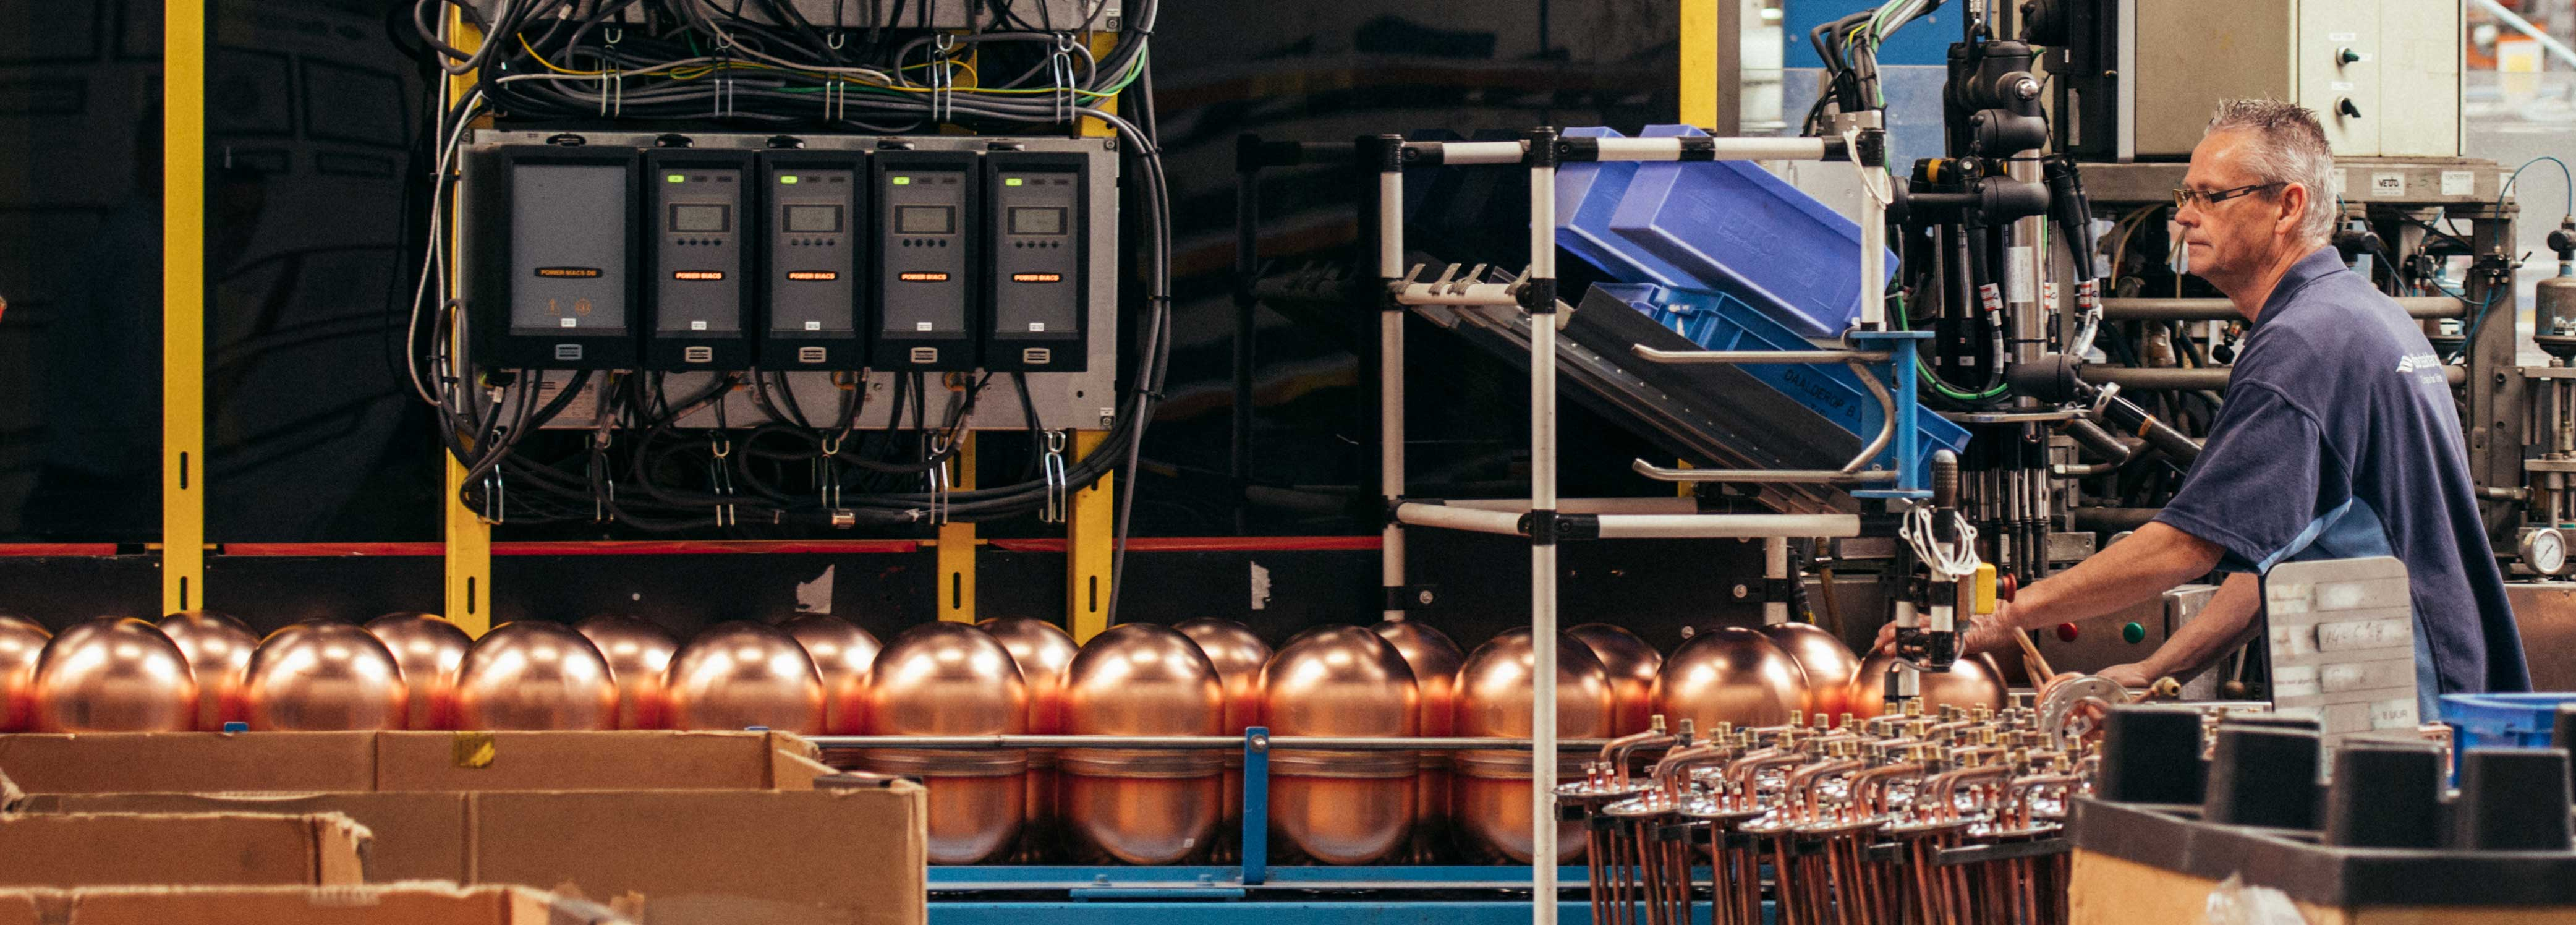 Itho Daalderop boiler production line optimisised by innius IIoT Smart Manufacturing